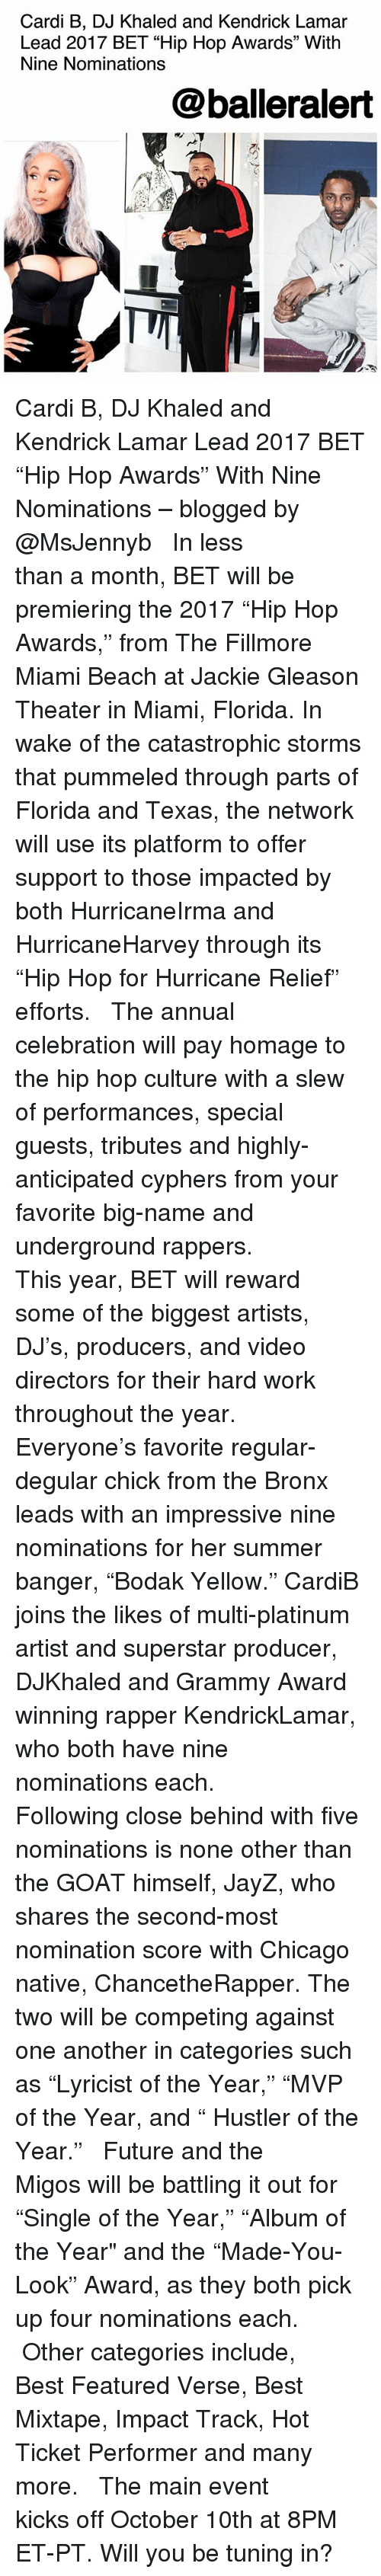 """gleason: Cardi B, DJ Khaled and Kendrick Lamar  Lead 2017 BET """"Hip Hop Awards"""" With  Nine Nominations  @balleralert Cardi B, DJ Khaled and Kendrick Lamar Lead 2017 BET """"Hip Hop Awards"""" With Nine Nominations – blogged by @MsJennyb ⠀⠀⠀⠀⠀⠀⠀ ⠀⠀⠀⠀⠀⠀⠀ In less than a month, BET will be premiering the 2017 """"Hip Hop Awards,"""" from The Fillmore Miami Beach at Jackie Gleason Theater in Miami, Florida. In wake of the catastrophic storms that pummeled through parts of Florida and Texas, the network will use its platform to offer support to those impacted by both HurricaneIrma and HurricaneHarvey through its """"Hip Hop for Hurricane Relief"""" efforts. ⠀⠀⠀⠀⠀⠀⠀ ⠀⠀⠀⠀⠀⠀⠀ The annual celebration will pay homage to the hip hop culture with a slew of performances, special guests, tributes and highly-anticipated cyphers from your favorite big-name and underground rappers. ⠀⠀⠀⠀⠀⠀⠀ ⠀⠀⠀⠀⠀⠀⠀ This year, BET will reward some of the biggest artists, DJ's, producers, and video directors for their hard work throughout the year. ⠀⠀⠀⠀⠀⠀⠀ ⠀⠀⠀⠀⠀⠀⠀ Everyone's favorite regular-degular chick from the Bronx leads with an impressive nine nominations for her summer banger, """"Bodak Yellow."""" CardiB joins the likes of multi-platinum artist and superstar producer, DJKhaled and Grammy Award winning rapper KendrickLamar, who both have nine nominations each. ⠀⠀⠀⠀⠀⠀⠀ ⠀⠀⠀⠀⠀⠀⠀ Following close behind with five nominations is none other than the GOAT himself, JayZ, who shares the second-most nomination score with Chicago native, ChancetheRapper. The two will be competing against one another in categories such as """"Lyricist of the Year,"""" """"MVP of the Year, and """" Hustler of the Year."""" ⠀⠀⠀⠀⠀⠀⠀ ⠀⠀⠀⠀⠀⠀⠀ Future and the Migos will be battling it out for """"Single of the Year,"""" """"Album of the Year"""" and the """"Made-You-Look"""" Award, as they both pick up four nominations each. ⠀⠀⠀⠀⠀⠀⠀ ⠀⠀⠀⠀⠀⠀⠀ Other categories include, Best Featured Verse, Best Mixtape, Impact Track, Hot Ticket Performer and many more. ⠀⠀⠀⠀⠀⠀⠀ ⠀⠀⠀⠀⠀⠀⠀ The main event kicks off """